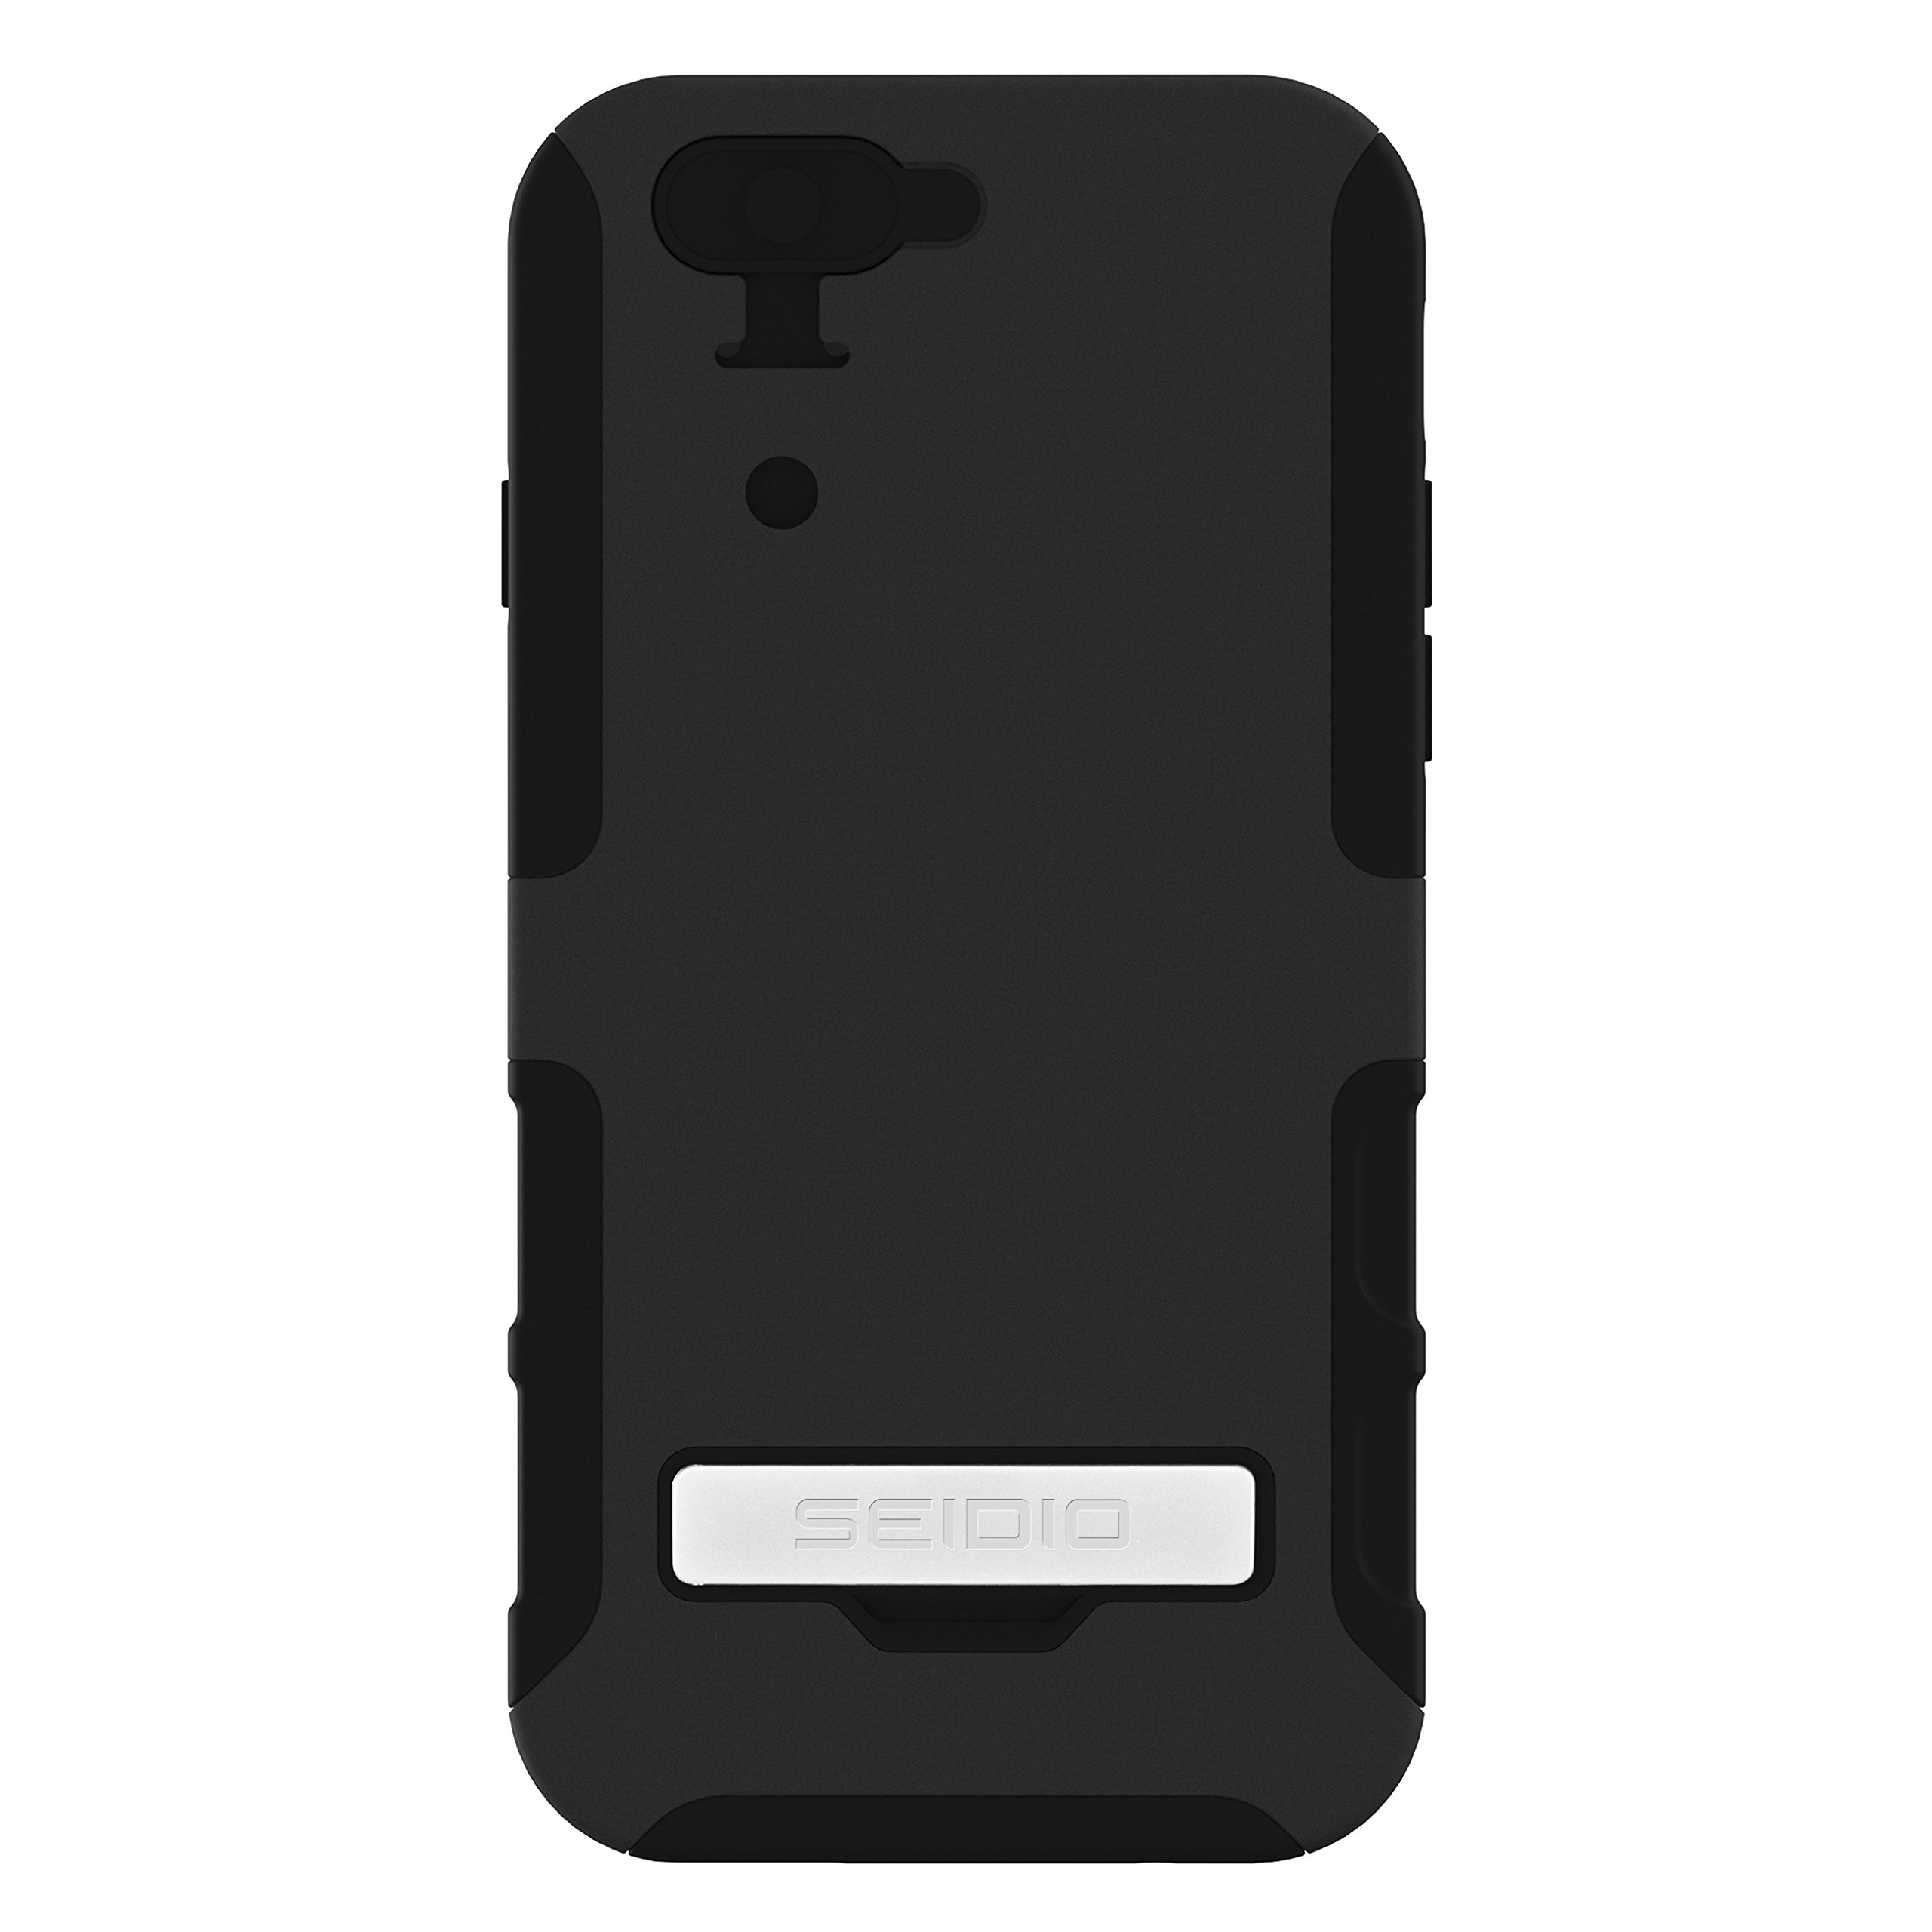 Seidio CONVERT Combo for iPhone 6 - Retail Packaging - Black by Seidio